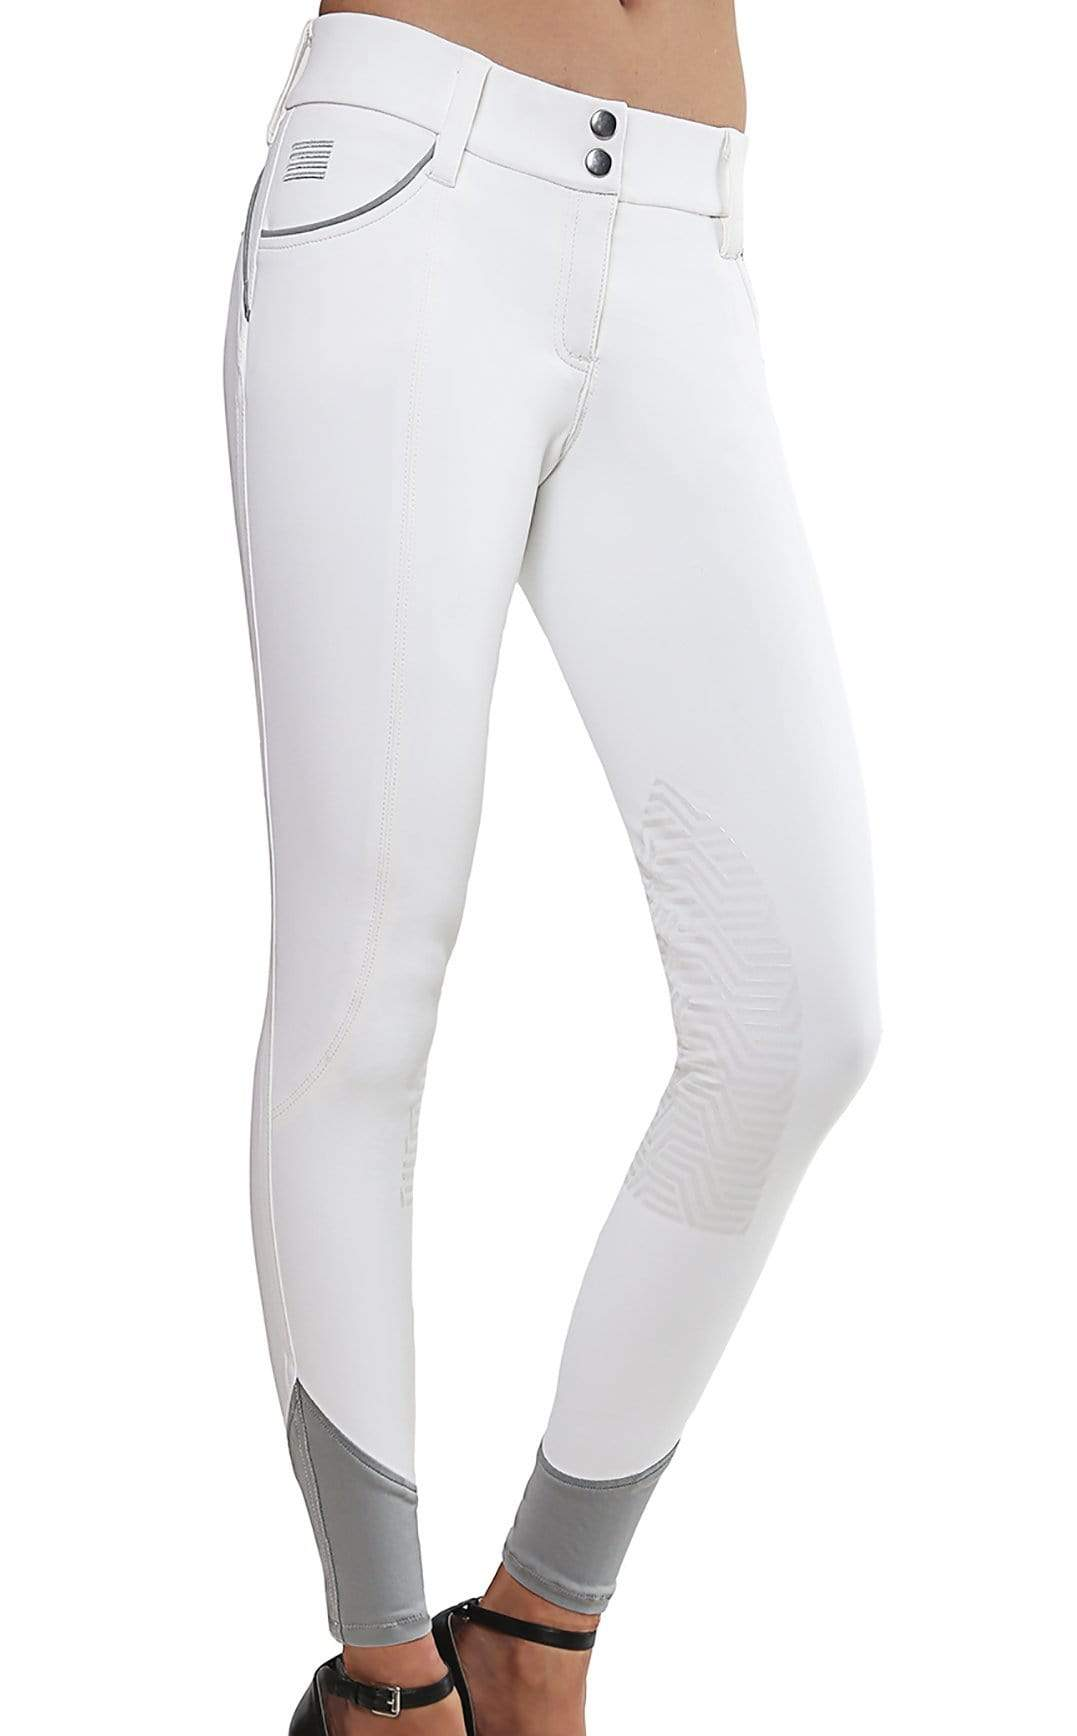 GhoDho Breeches GhoDho Aubrie Pro Breeches equestrian team apparel online tack store mobile tack store custom farm apparel custom show stable clothing equestrian lifestyle horse show clothing riding clothes horses equestrian tack store